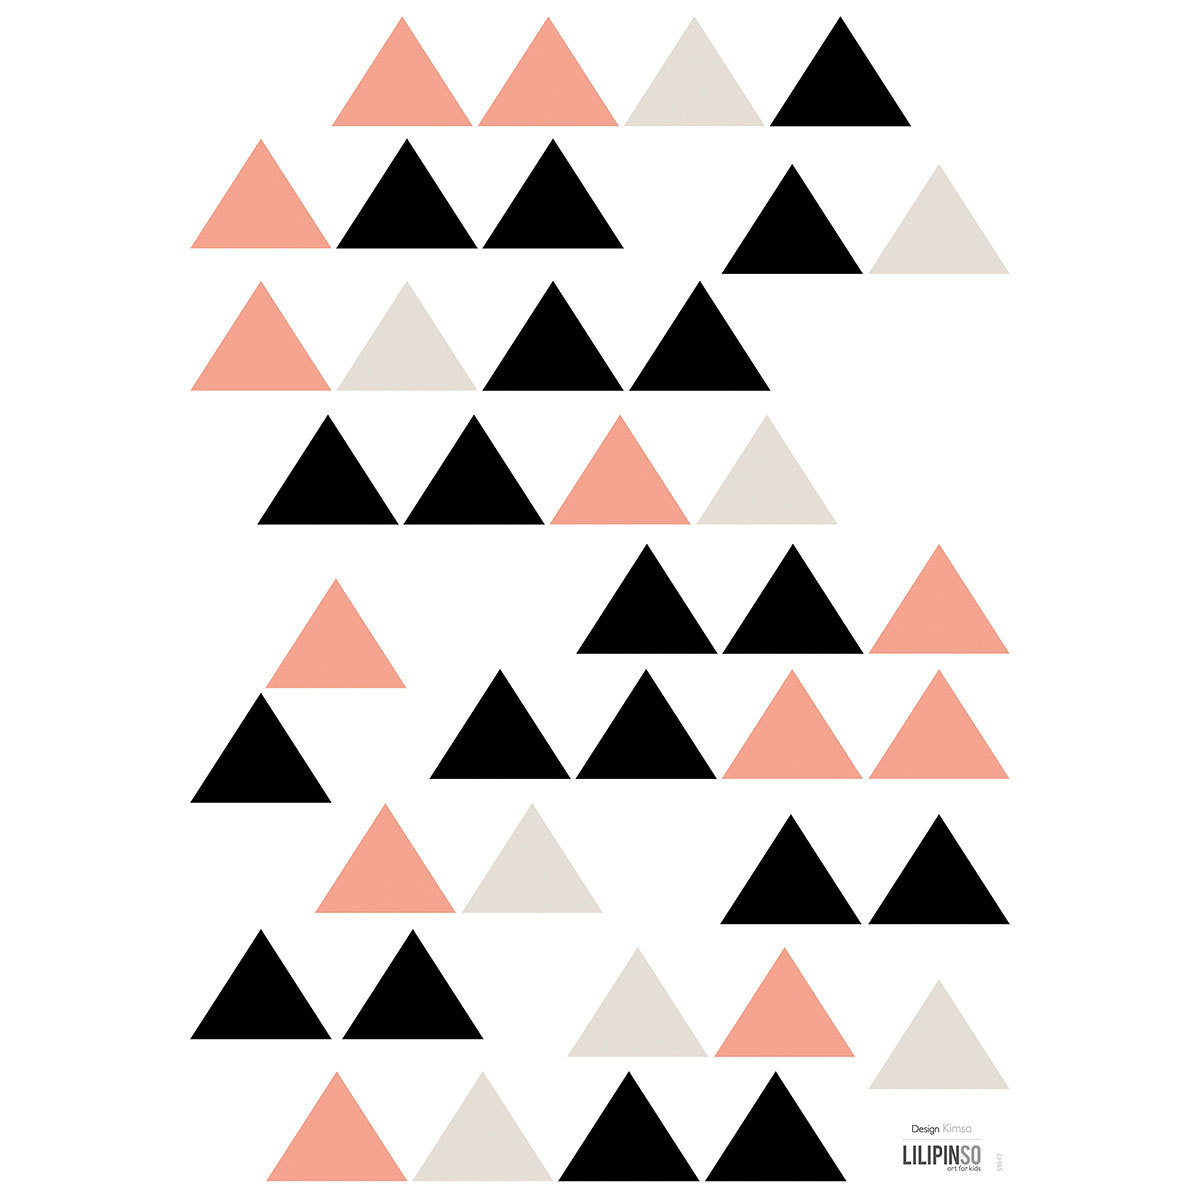 Sticker Origami Play - Stickers A3 - Triangles Noir & Corail Origami Play - Stickers A3 - Triangles Noir & Corail